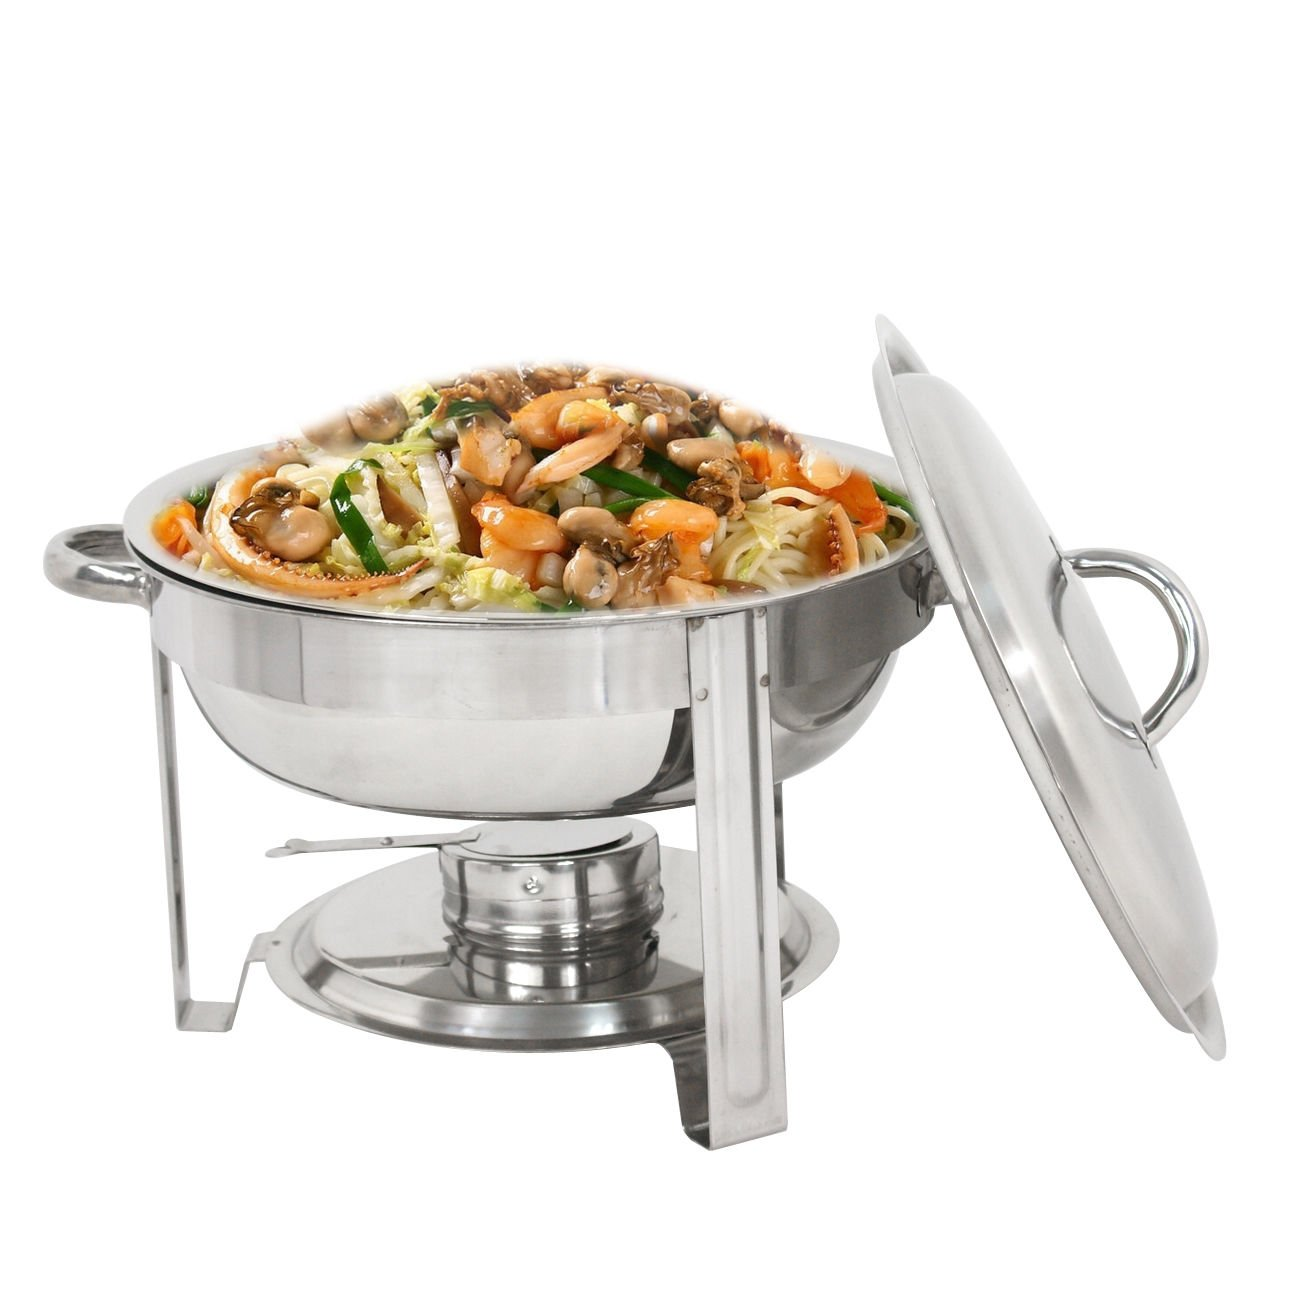 ZENY Round Chafing Dish Full Size 5 Quart Stainless Steel Deep Pans Chafer Dish Set Buffet Catering Party Events Warmer Serving Set Utensils w/Fuel Holder (1)